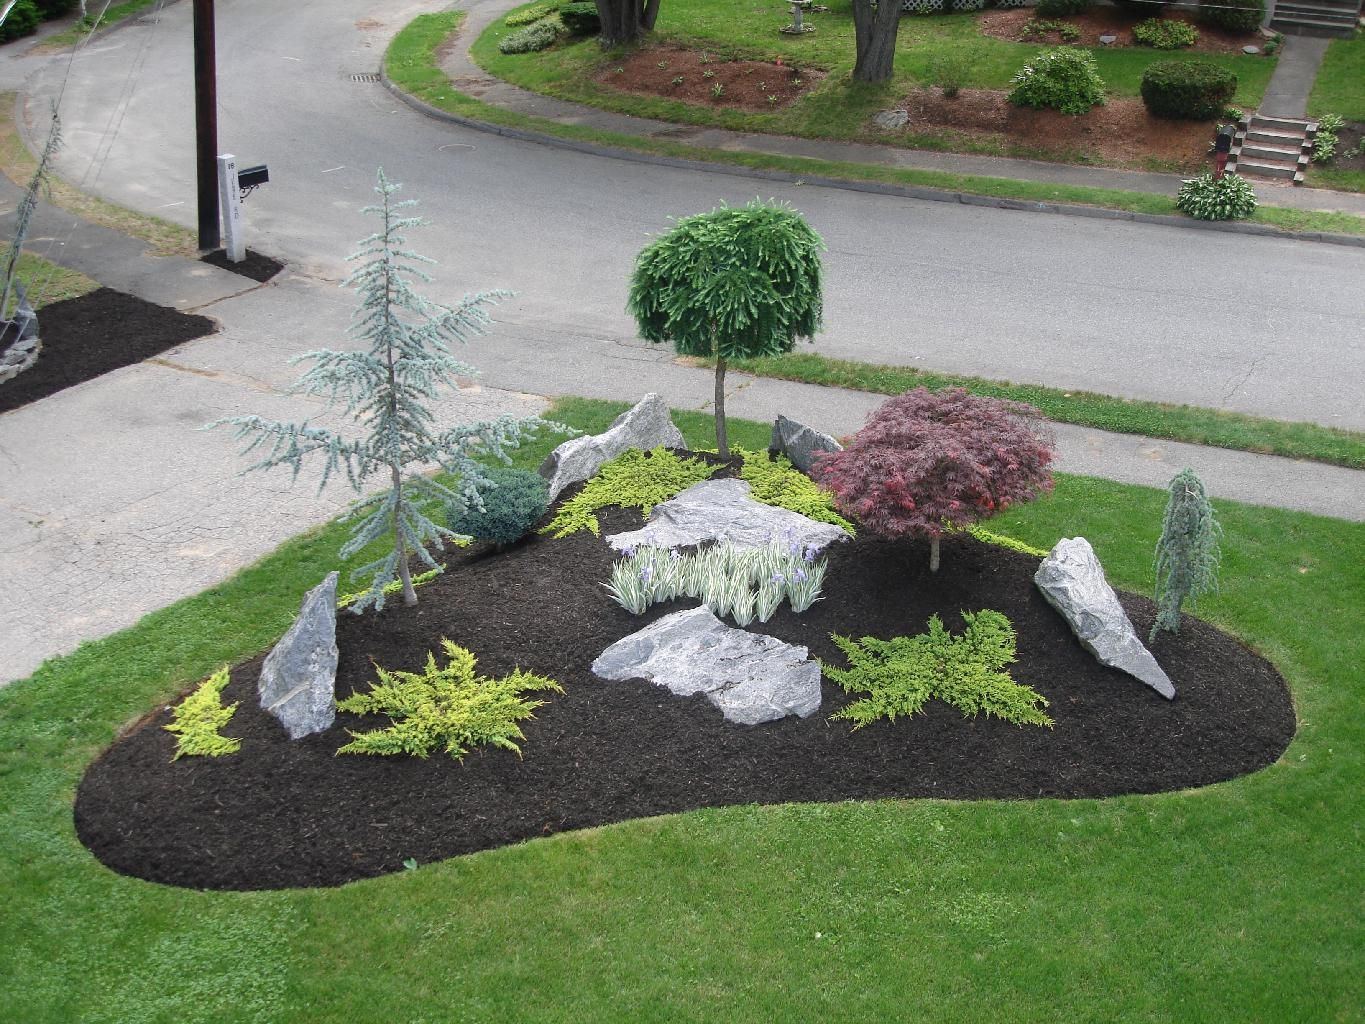 Simple landscape designs with rock beds google search for Front yard garden ideas designs